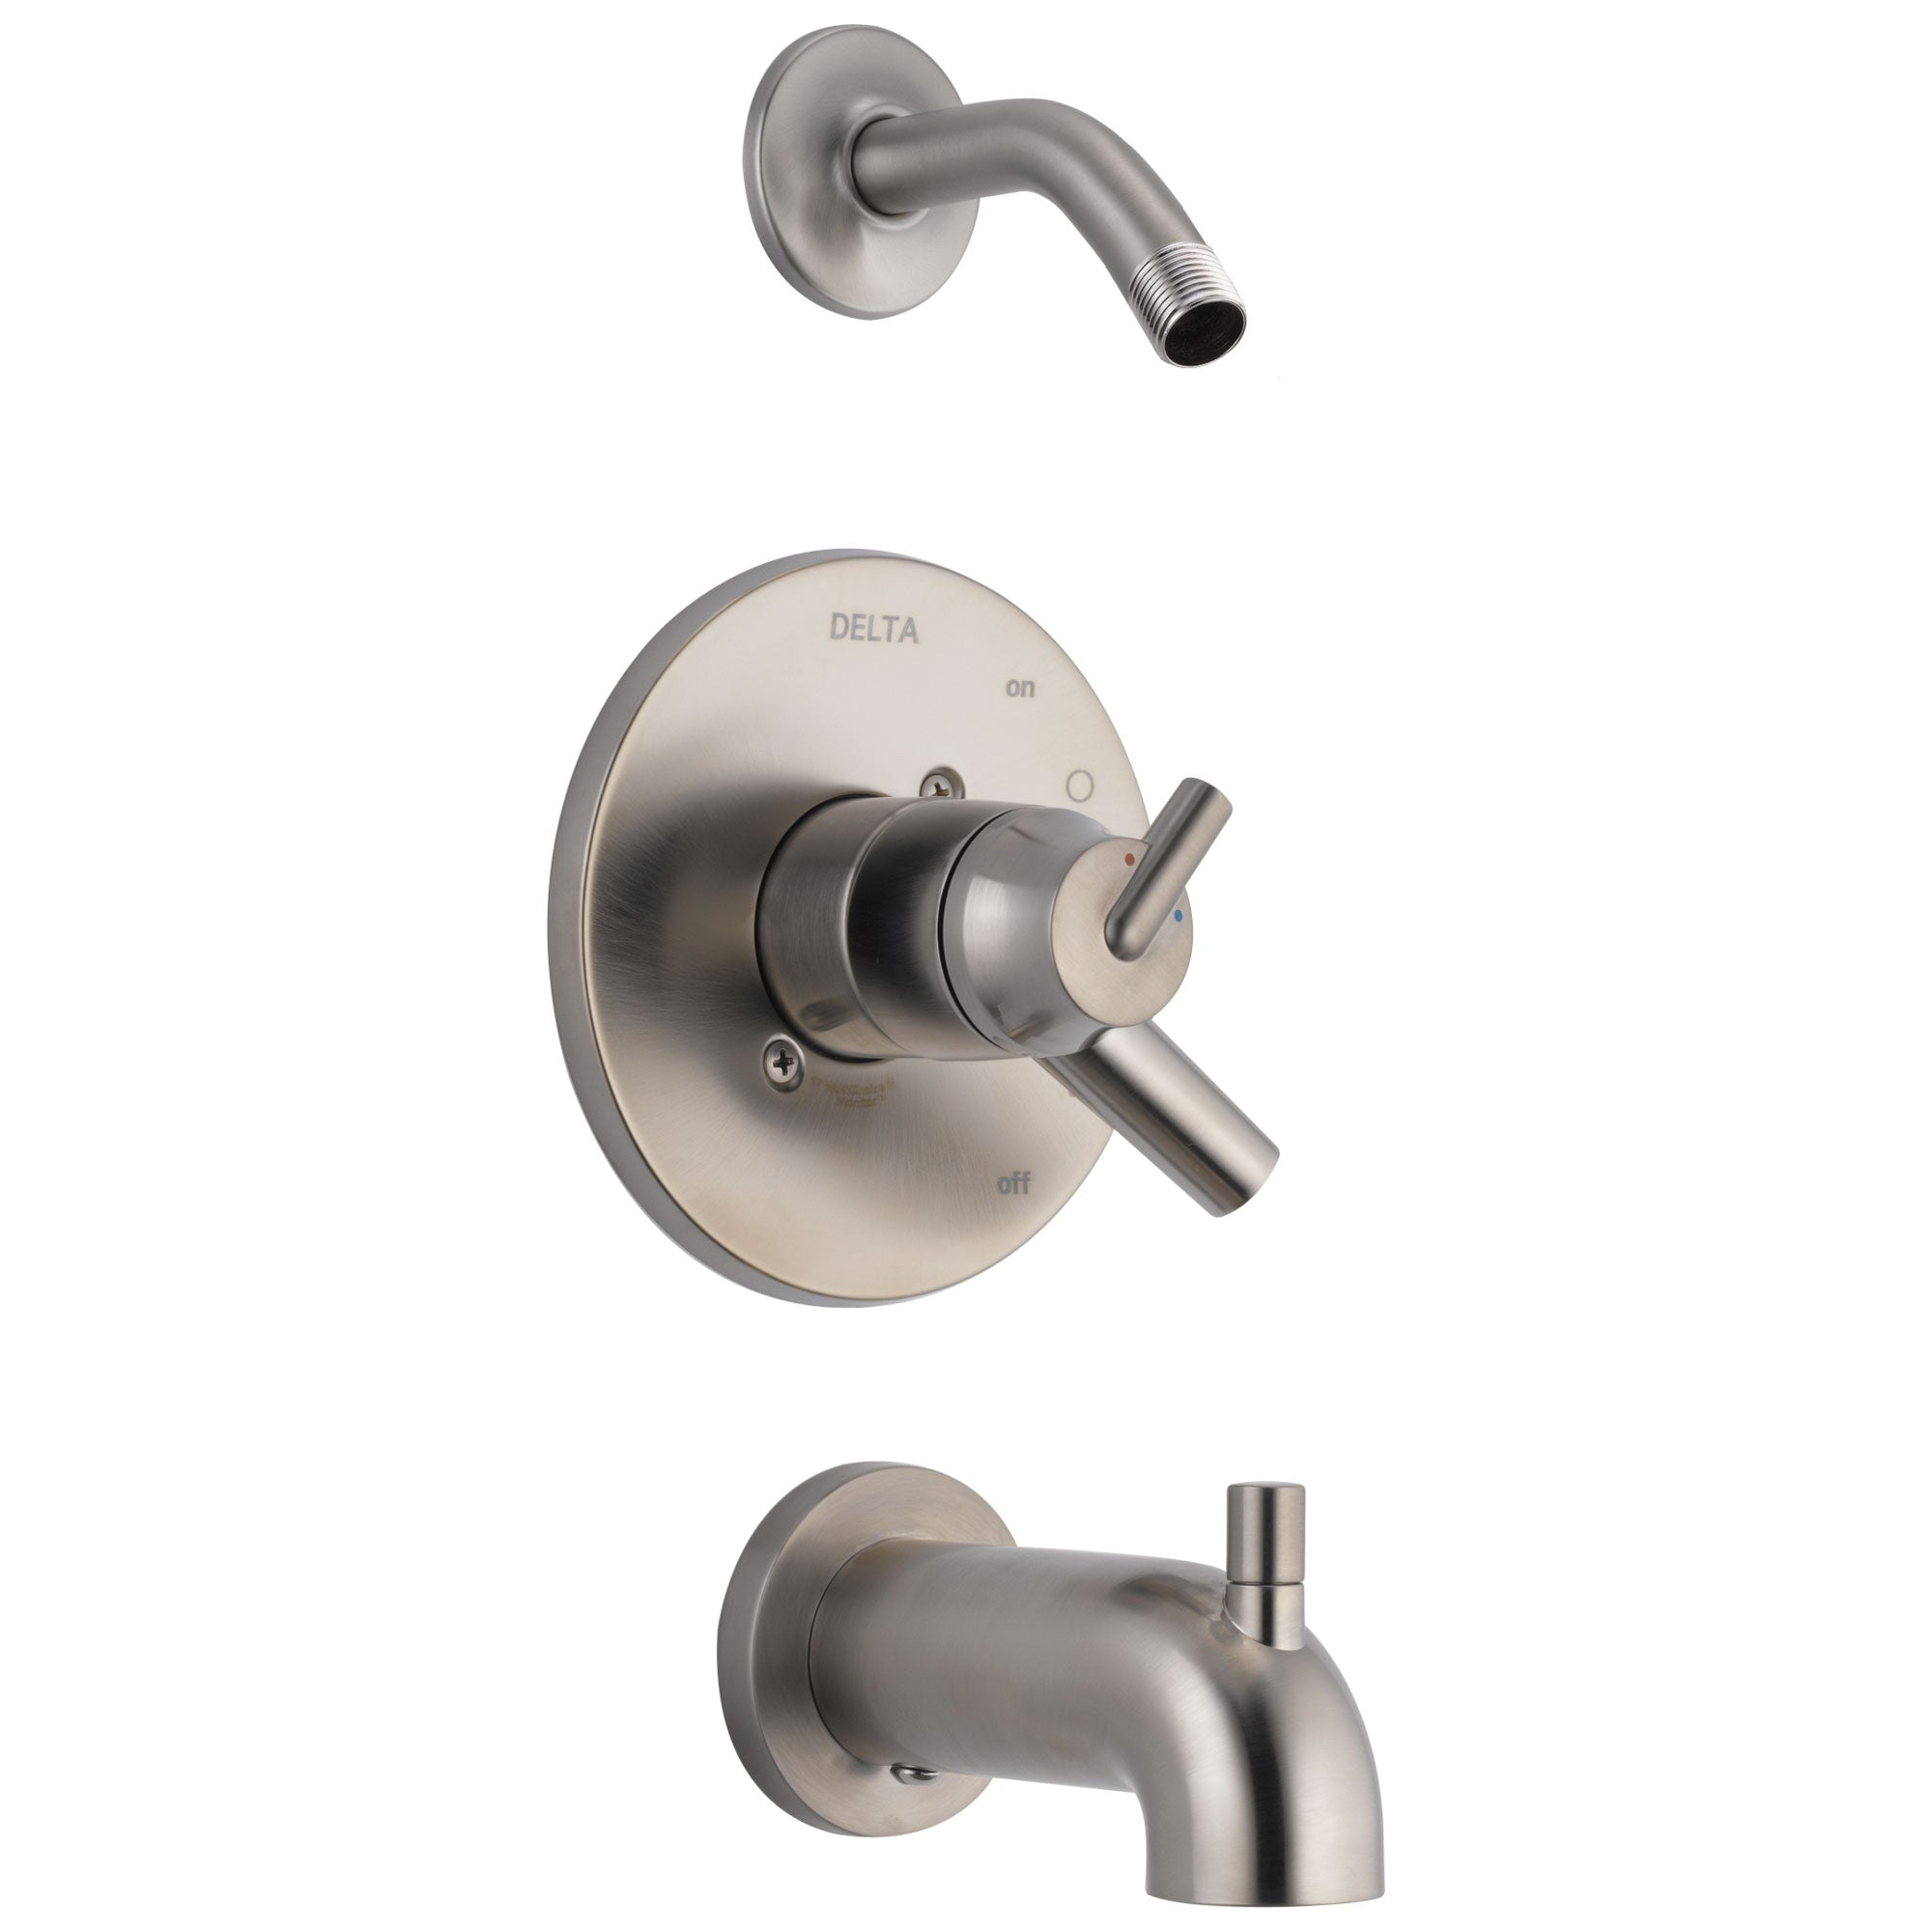 Delta Trinsic Collection Stainless Steel Finish Dual Temp and Volume Control Tub and Shower Combo Less Shower Head Trim (Requires Valve) DT17459SSLHD